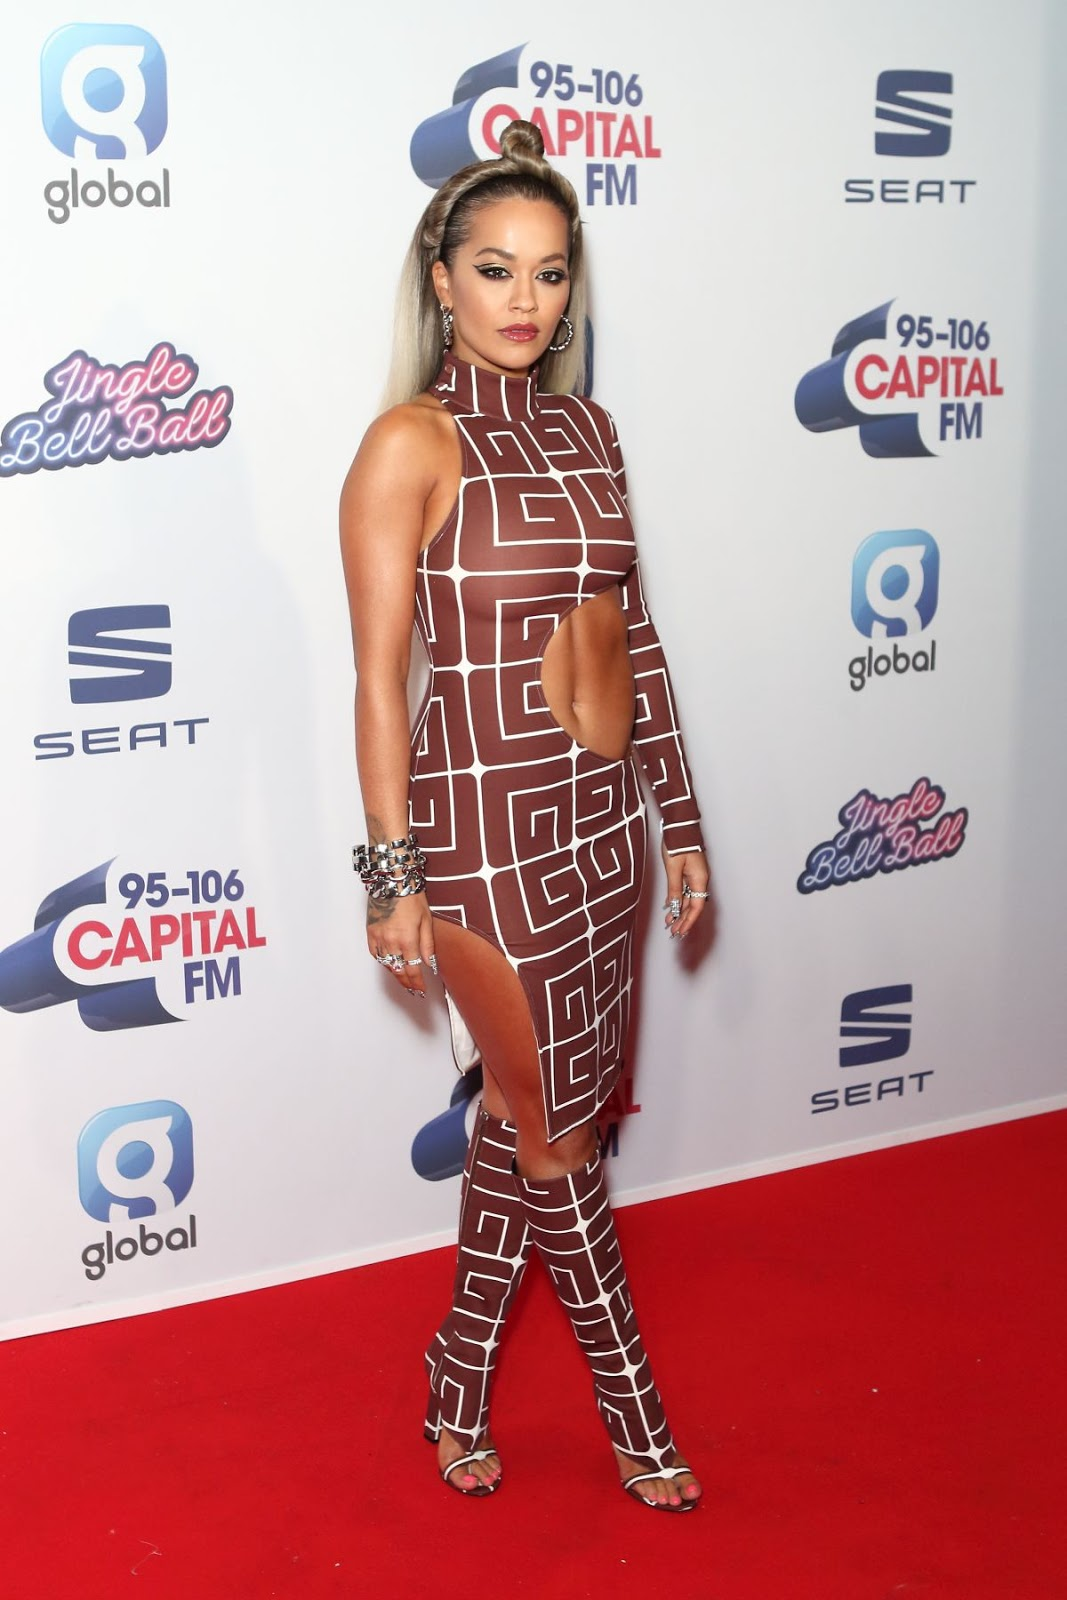 RITA ORA at Capital's Jingle Bell Ball 2019 in London 12/07/2019